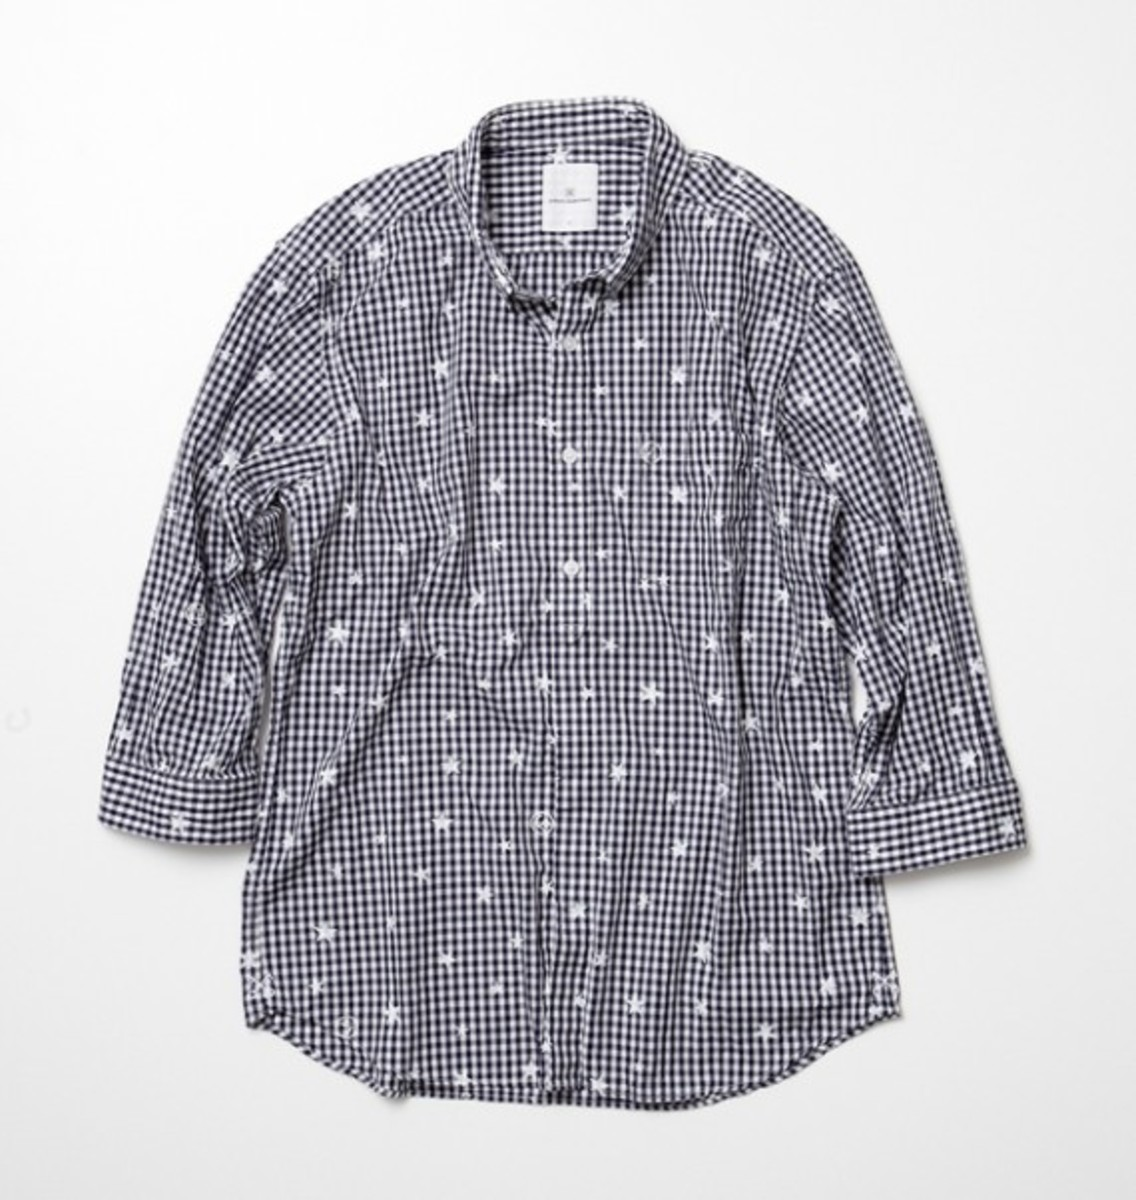 star-print-gingham-check-shirt-02